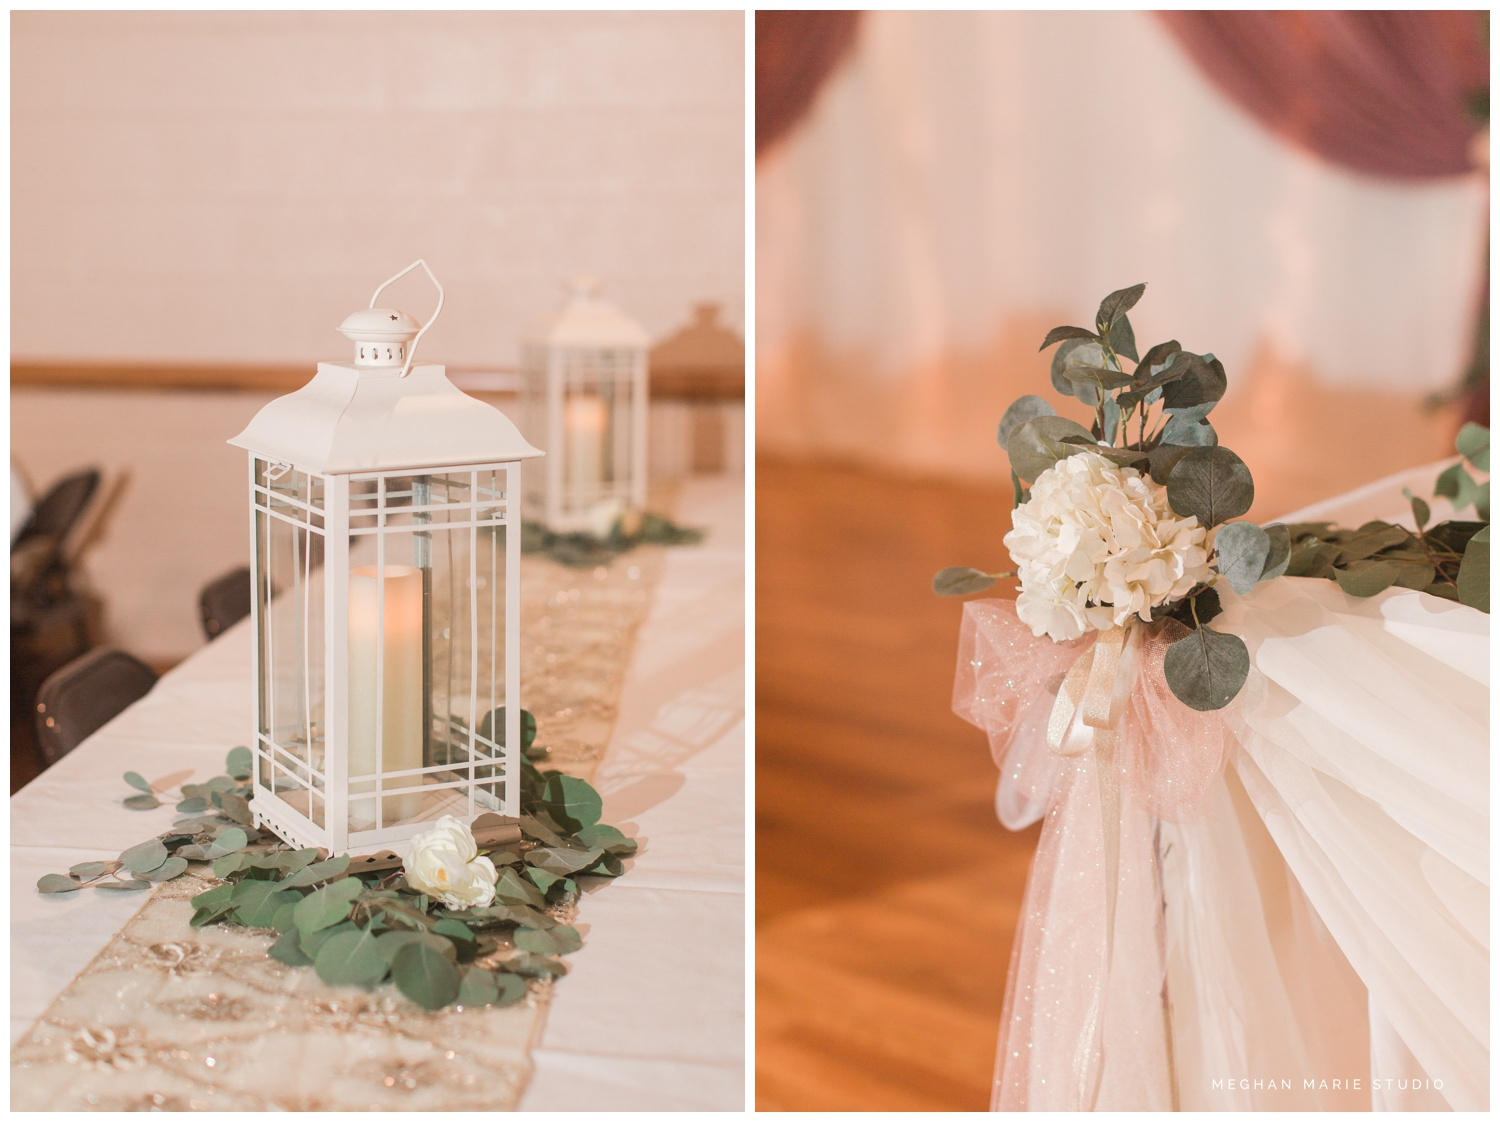 meghan marie studio wedding photographer ohio troy dayton columbus small town rustic rural farm cows vintage mauves dusty rose pinks whites ivorys grays f1 sound paper lanterns pearls_0650.jpg